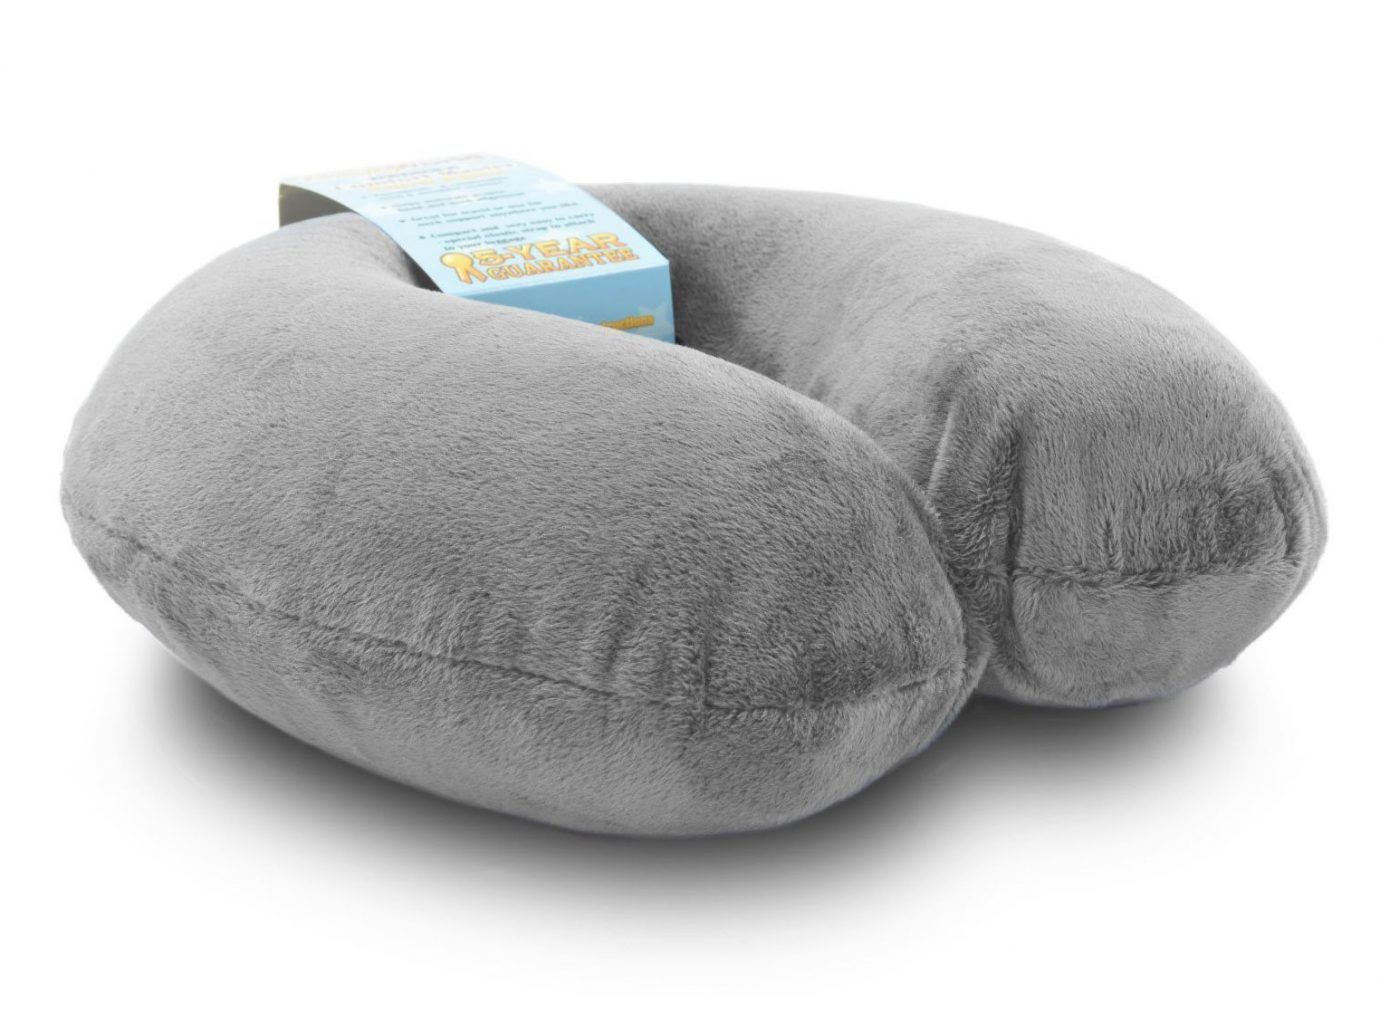 the best travel pillows for your next